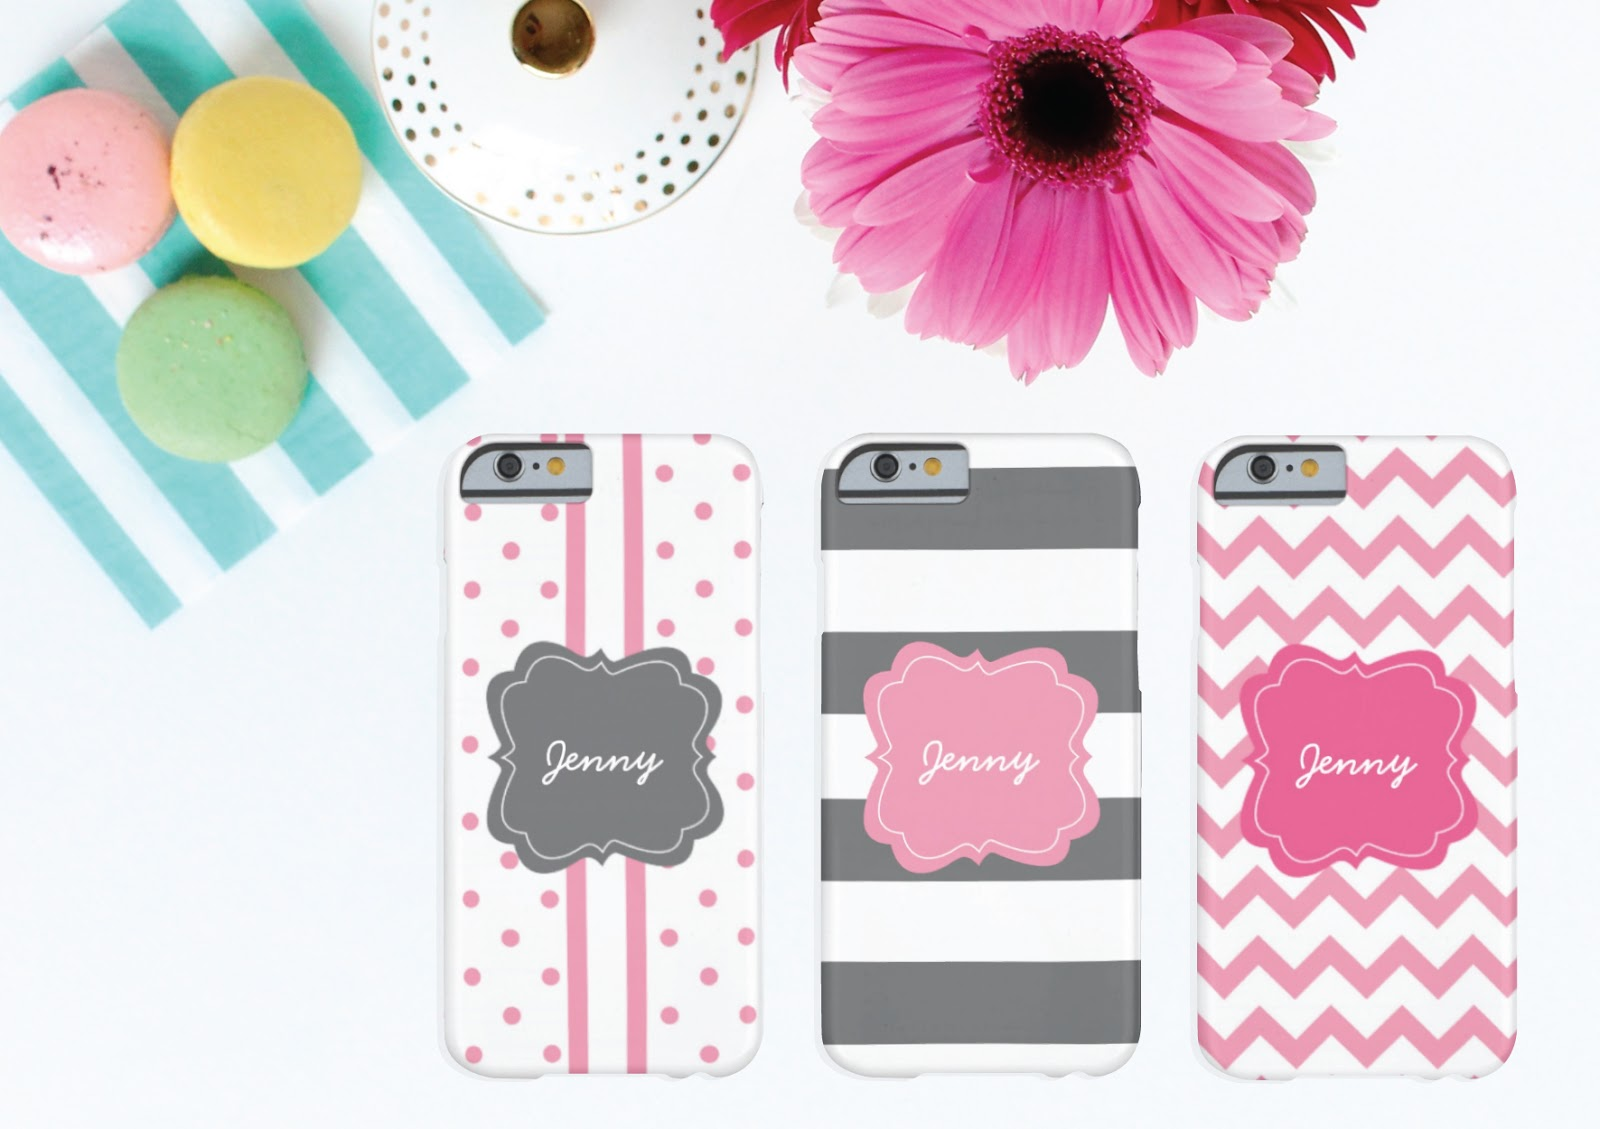 New iPhone 6 cases by Jessica Marie Design